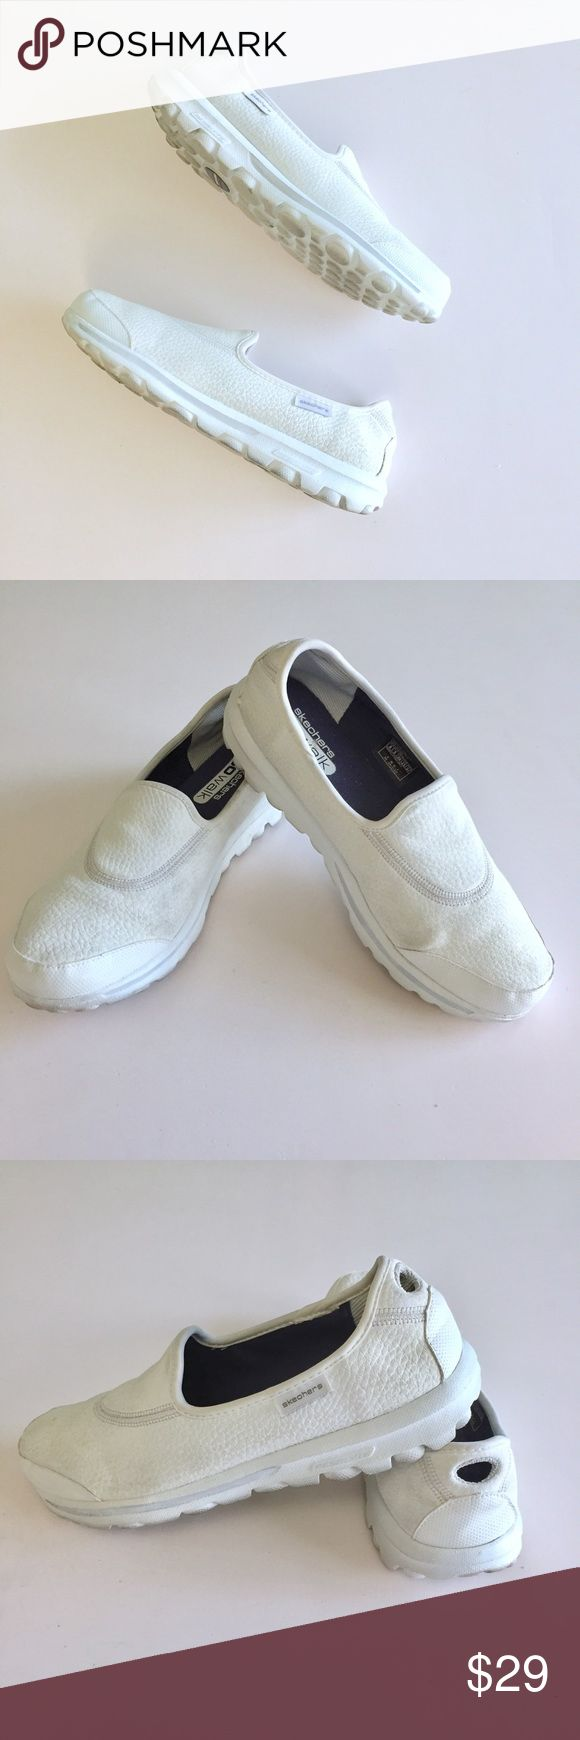 Skechers GOWalk Up for Sale gently used Sketchers GOWalk sneakers. Great condition. Check out my closet, bundle and make me an offer!!! Skechers Shoes Sneakers